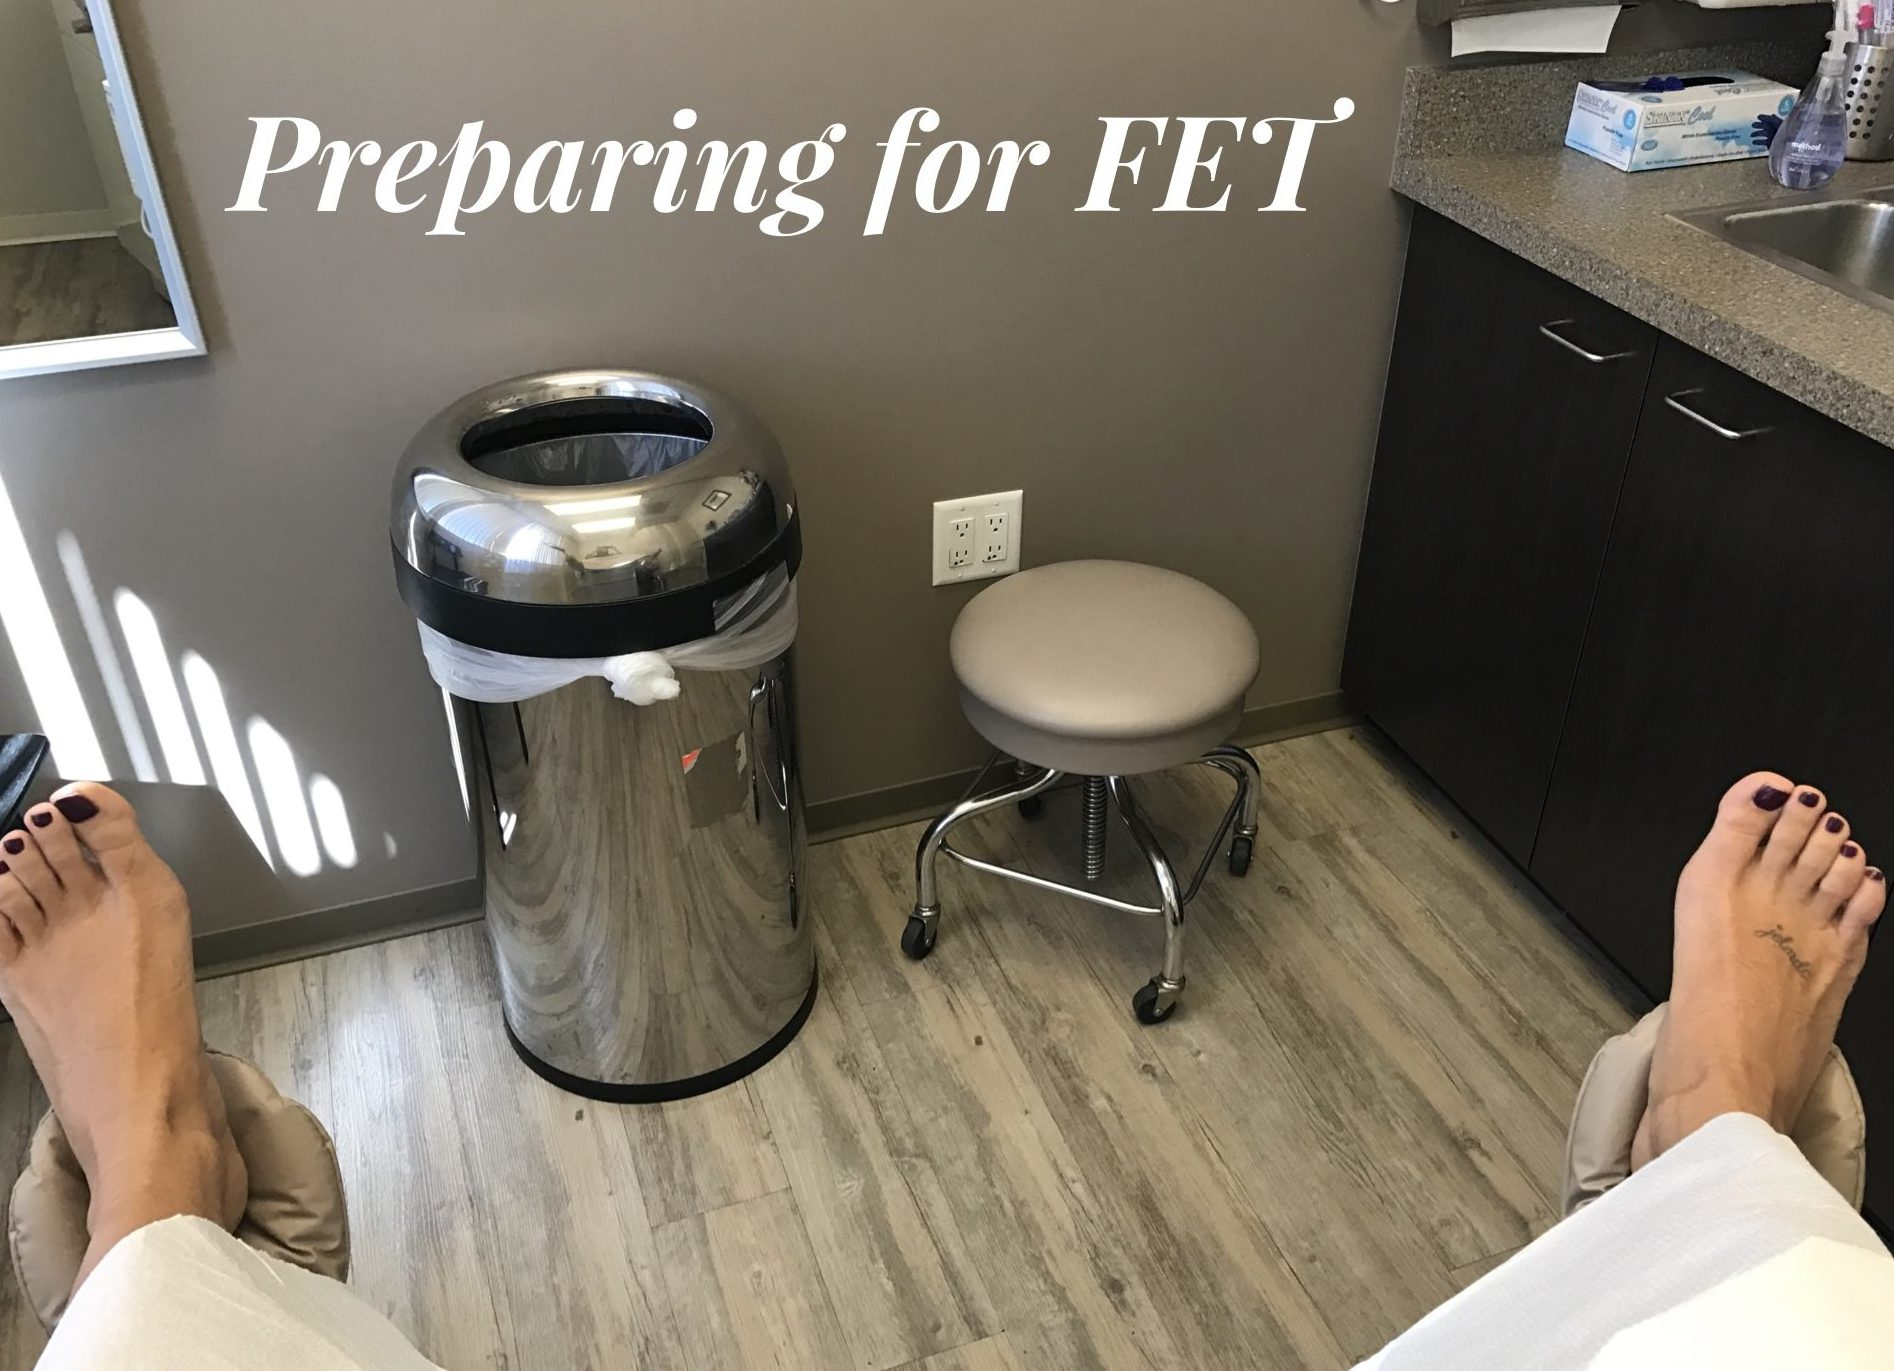 FET frozen embryo transfer